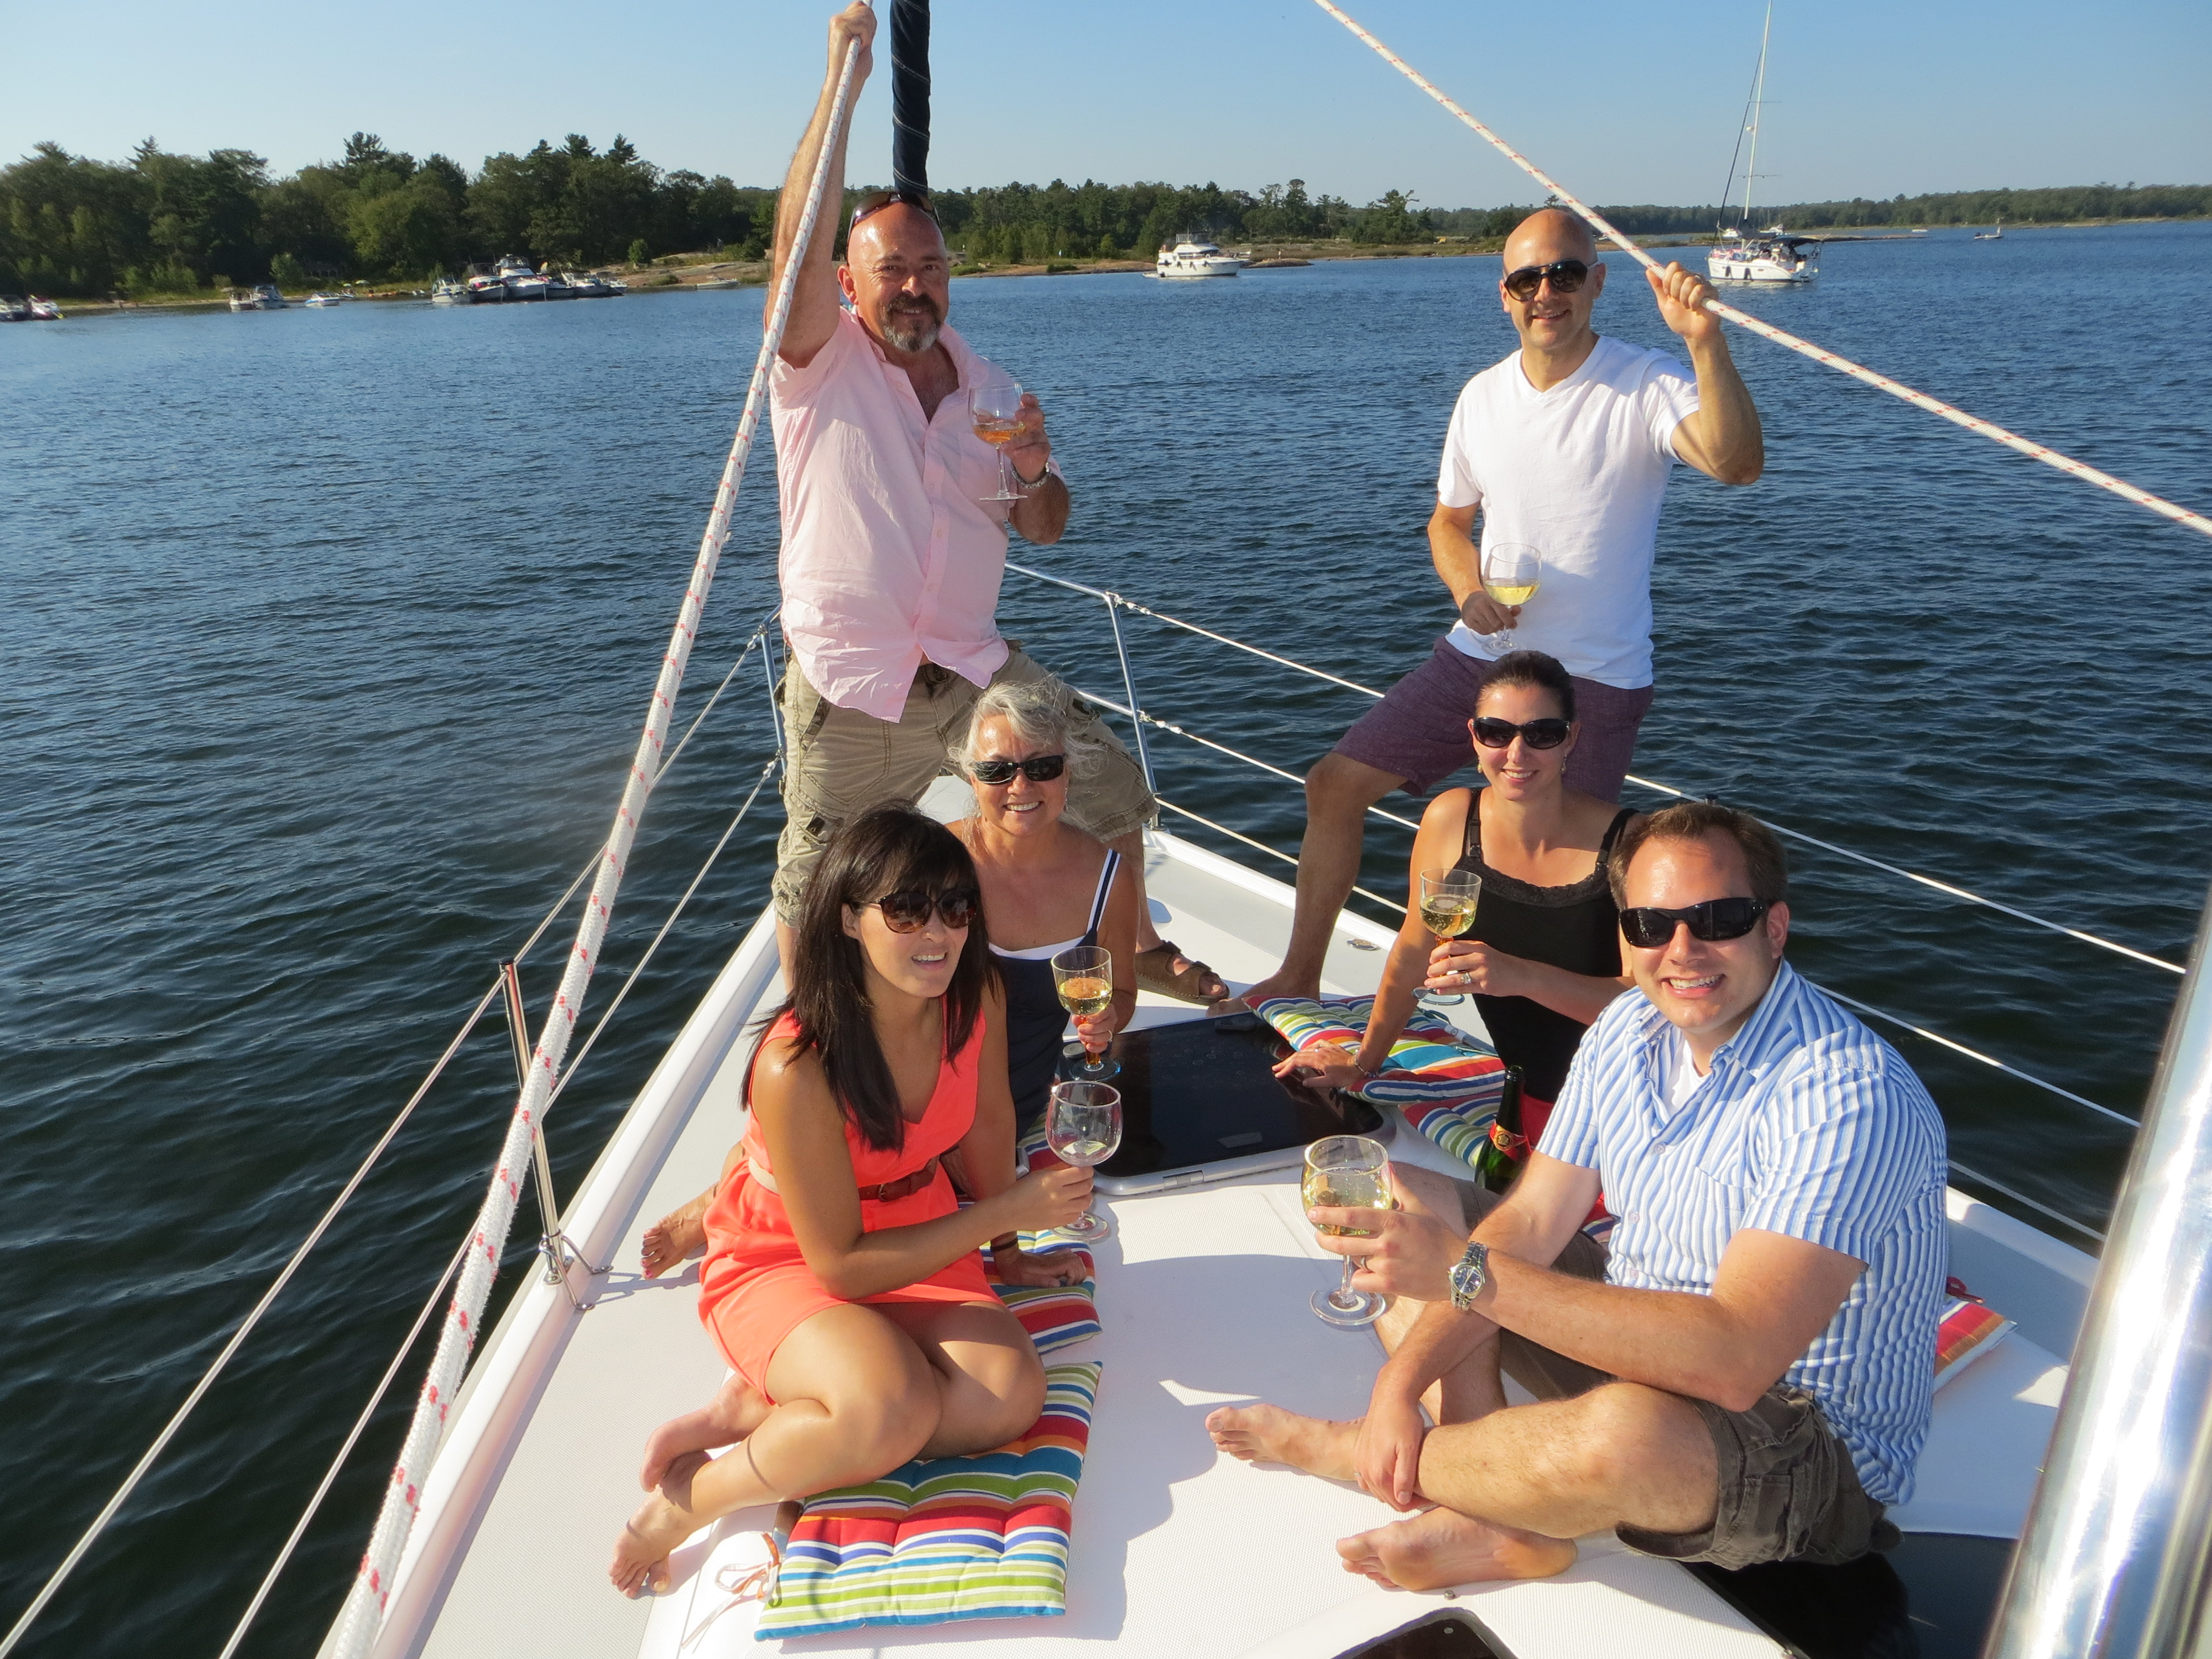 The Robitaille Sunset Dinner Cruise